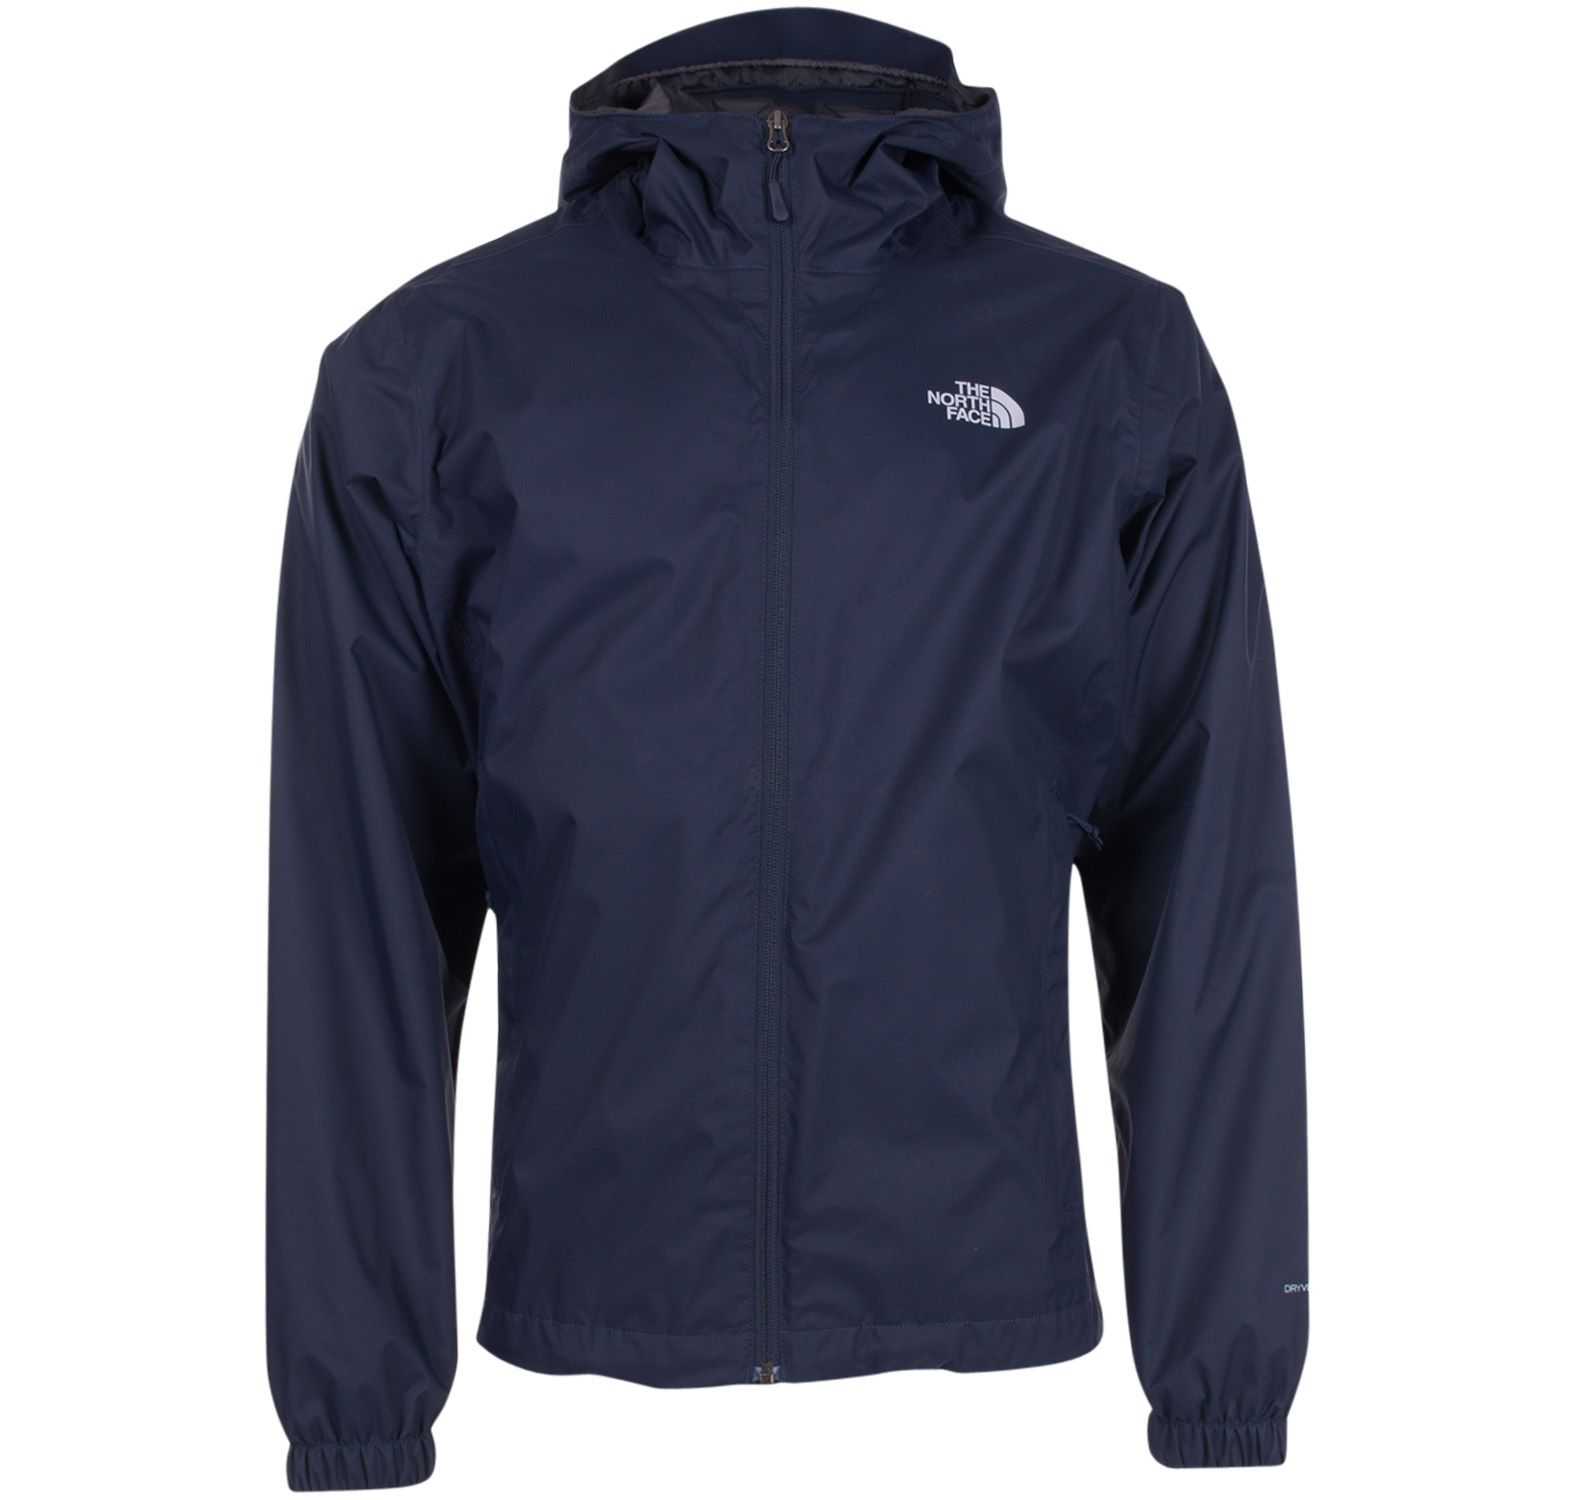 m quest jacket, urban navy, l, regnjackor